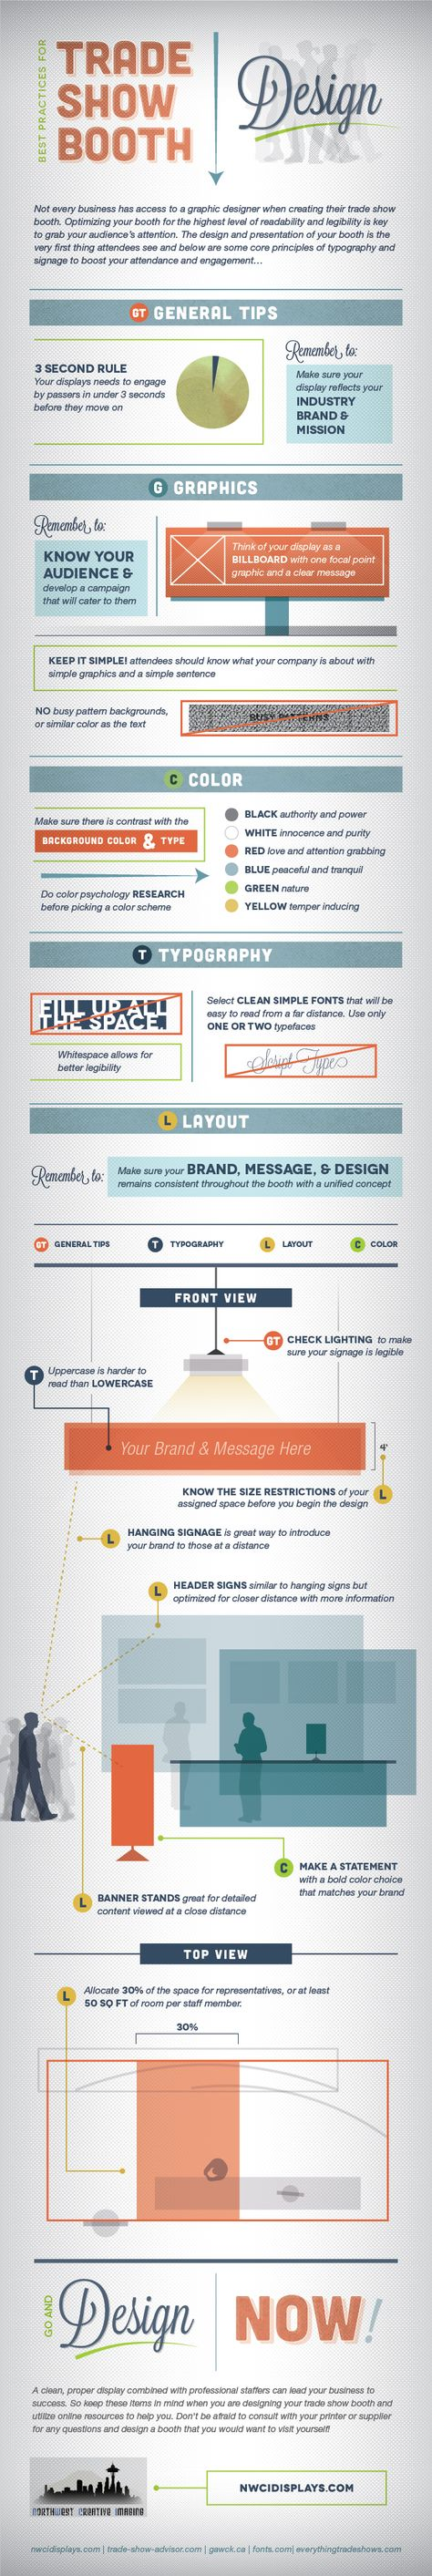 The best practices in setting up a trade show booth. #Infographic